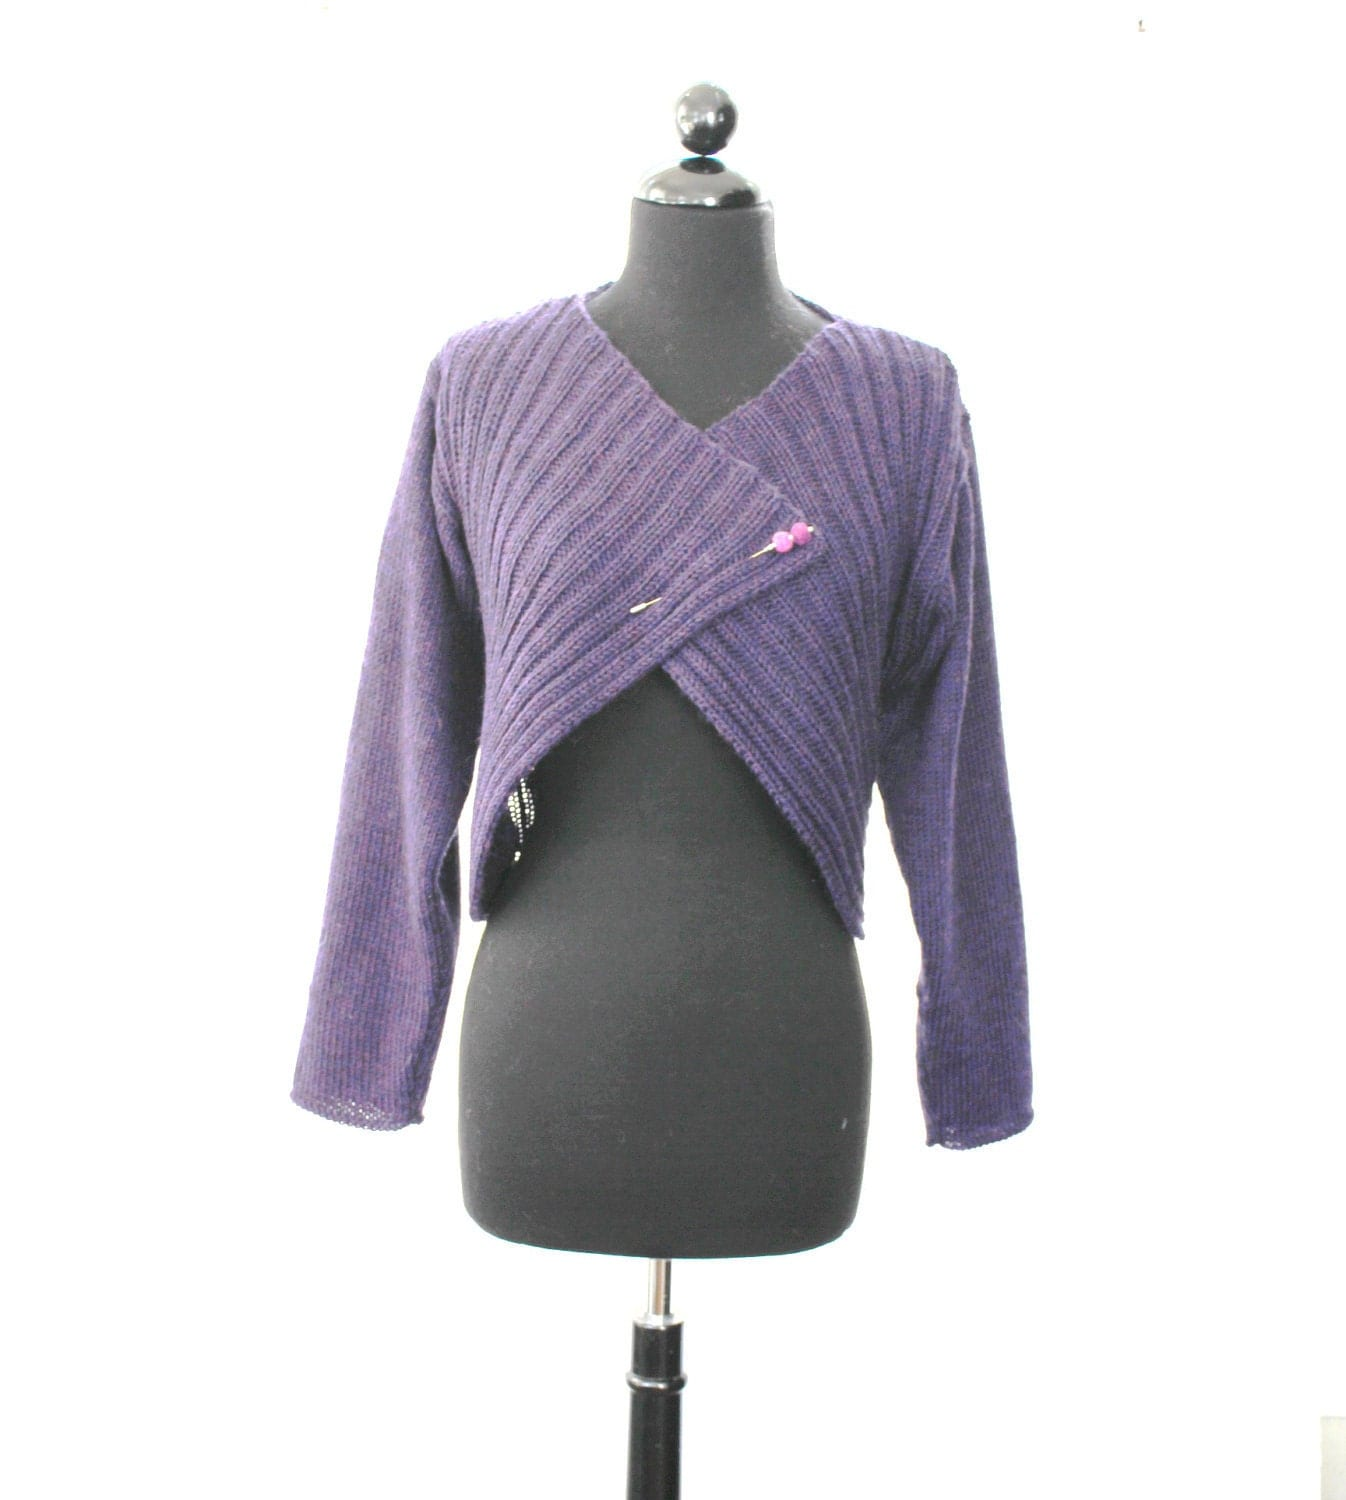 Free Knitting Pattern For Shrug : BOLERO KNIT PATTERNS   Free Patterns